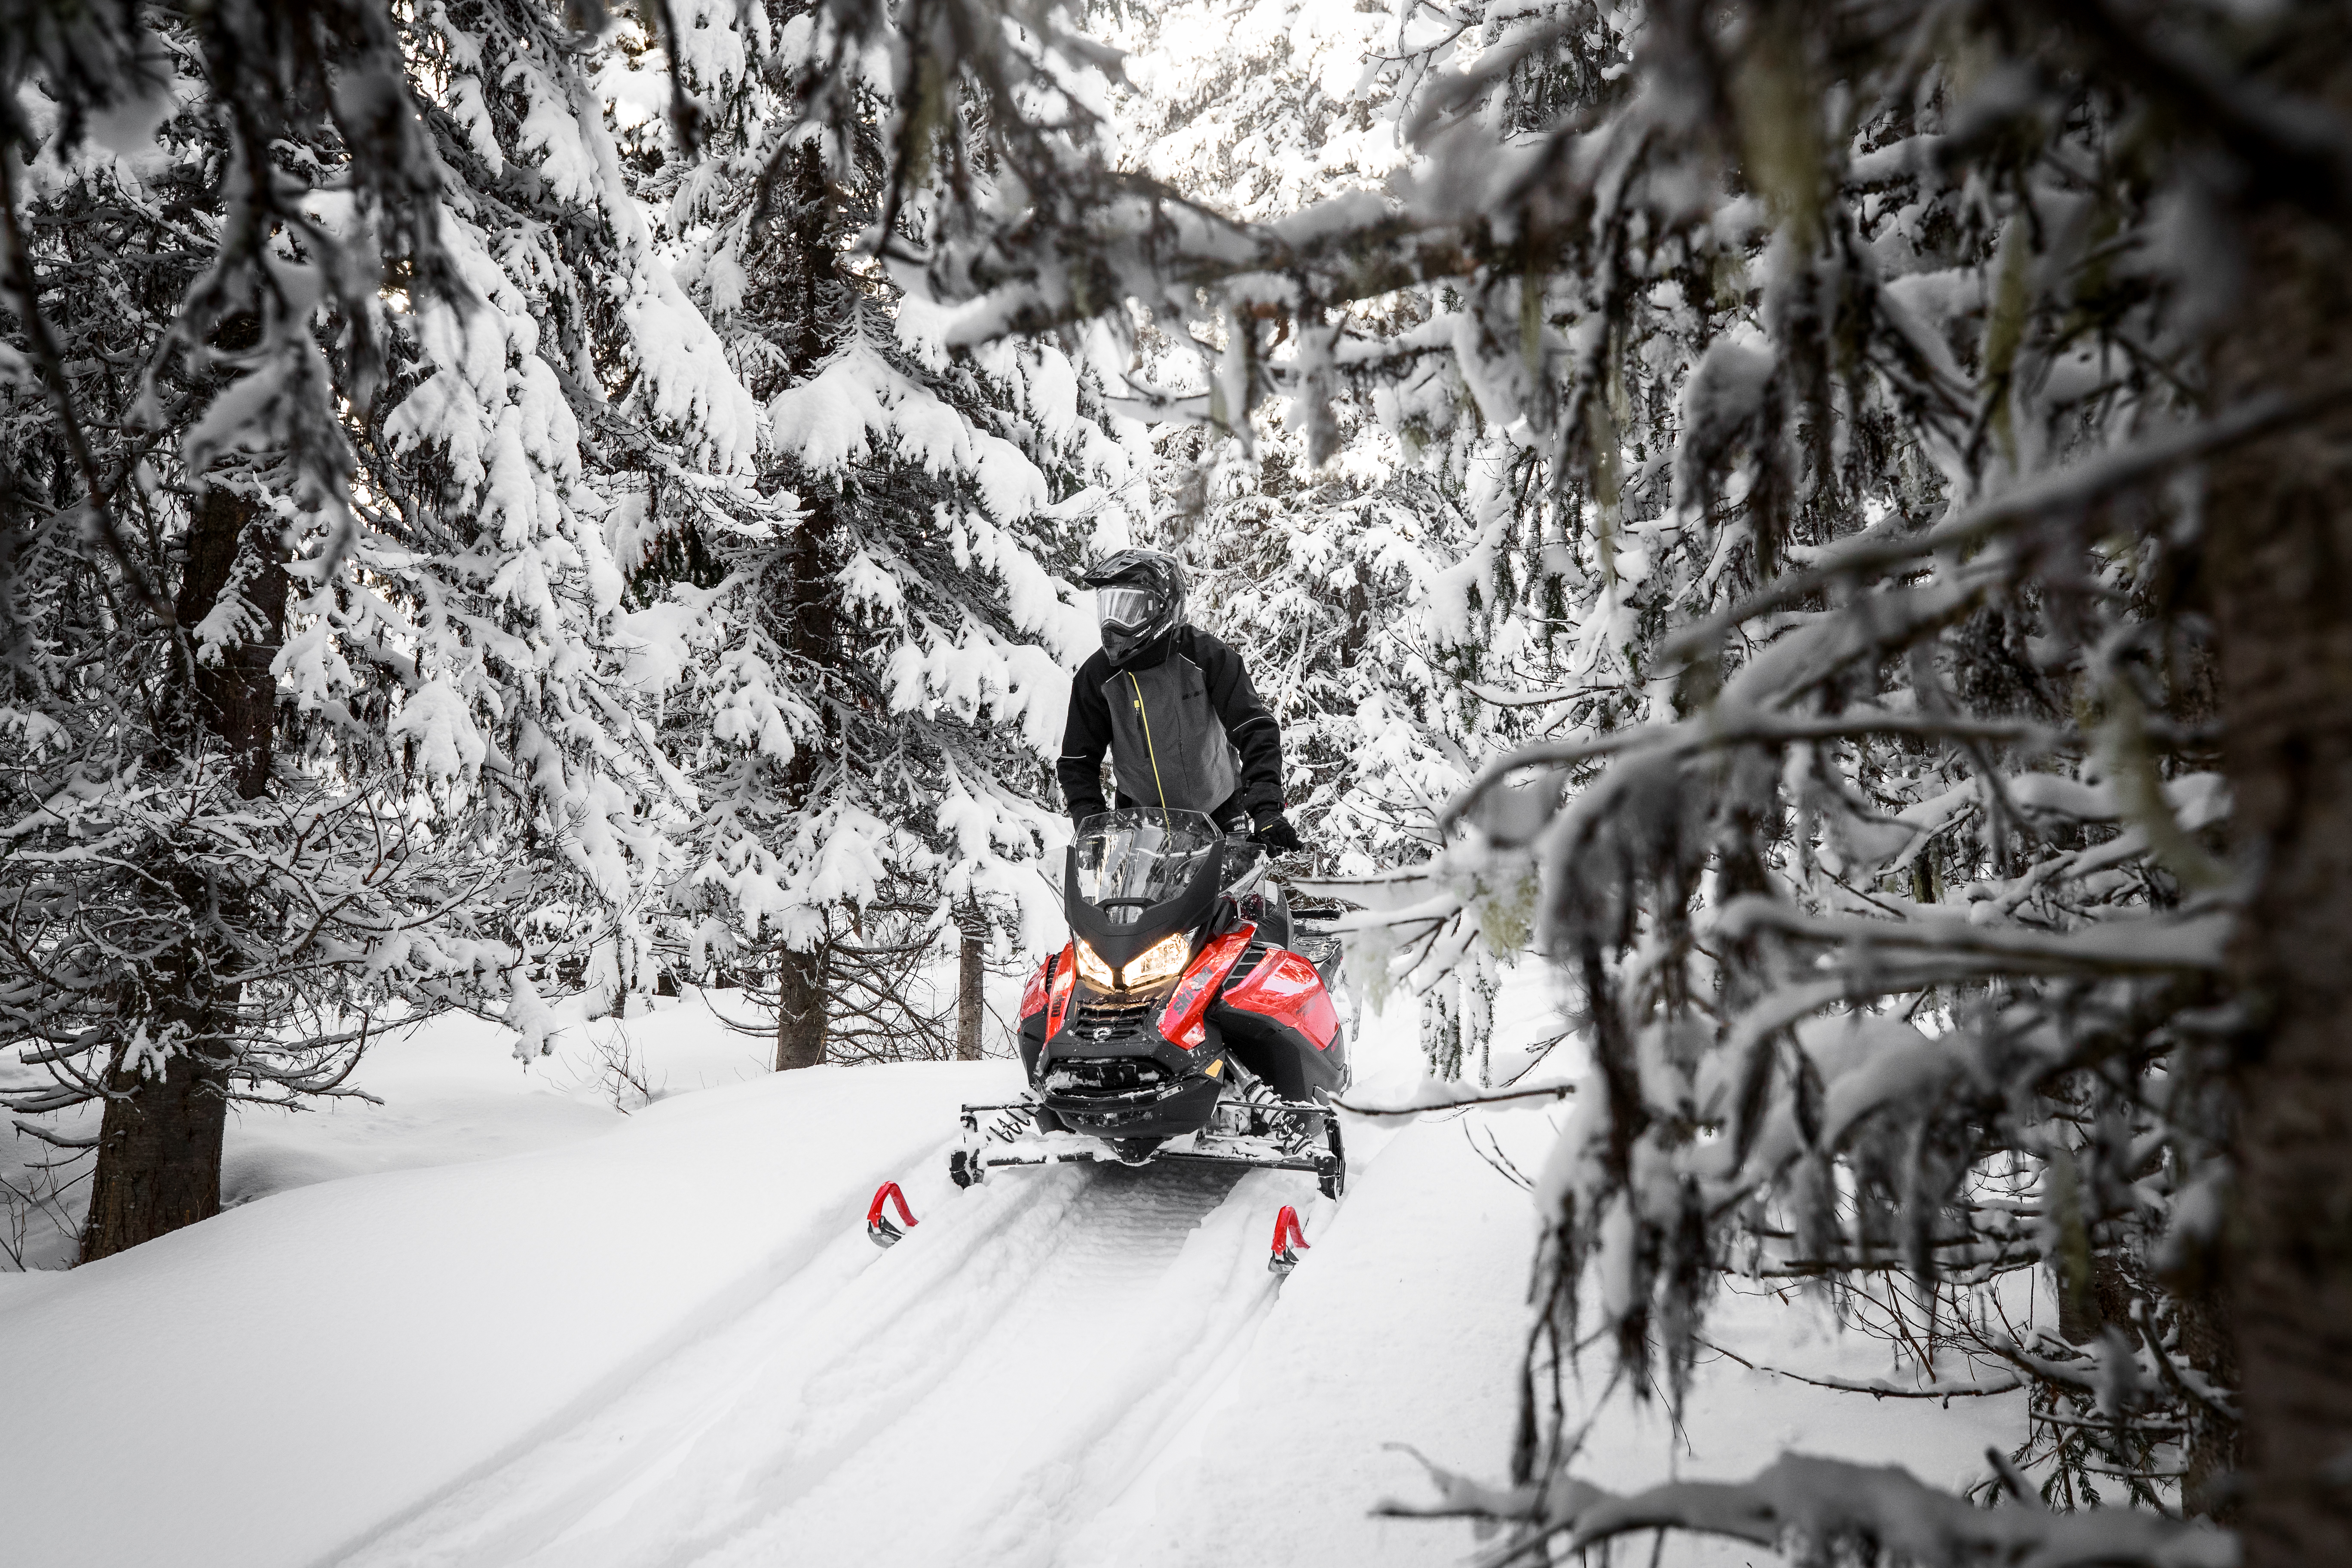 Navigating a path through the woods on a Ski-Doo snowmobile